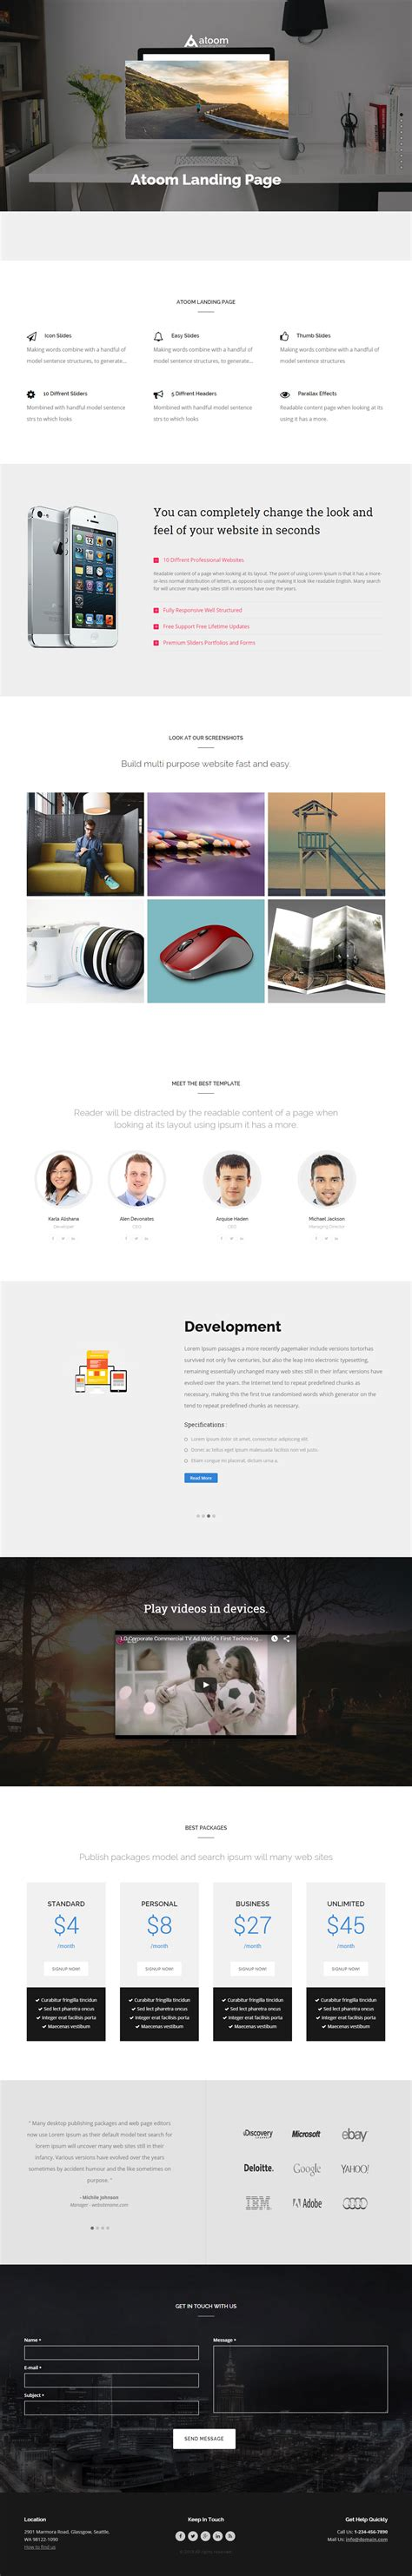 Drupal Theme Landing Page | 10 best drupal landing page themes 2017 responsive miracle